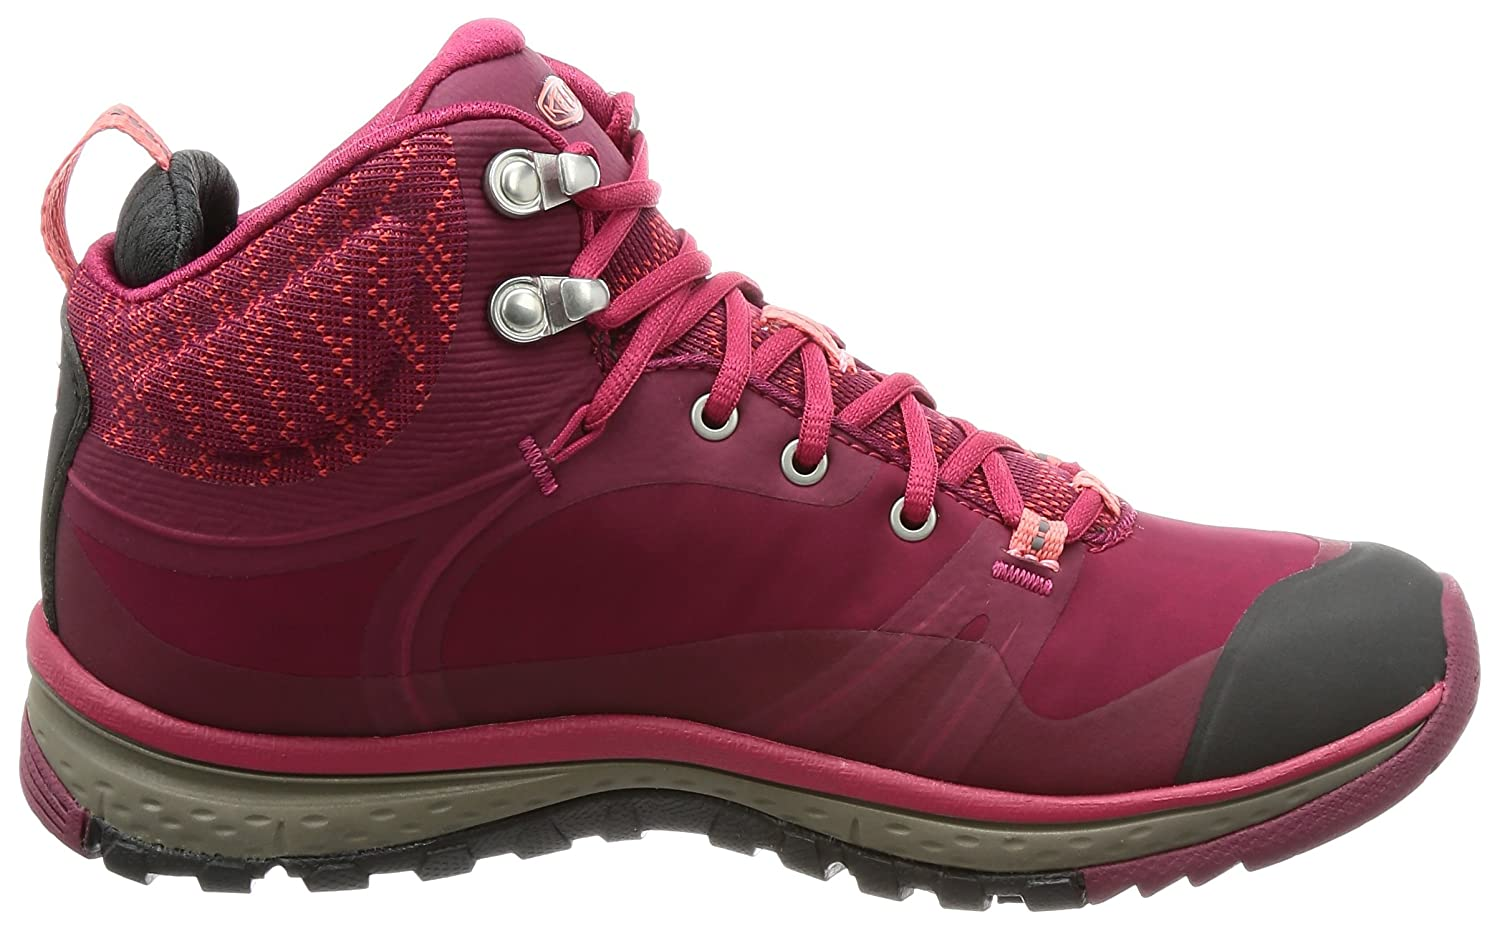 KEEN Women's Terradora Pulse Mid 10 WP-W Hiking Boot B01N2IAL98 10 Mid B(M) US|Rhododendron/Sugar Coral e1fb42